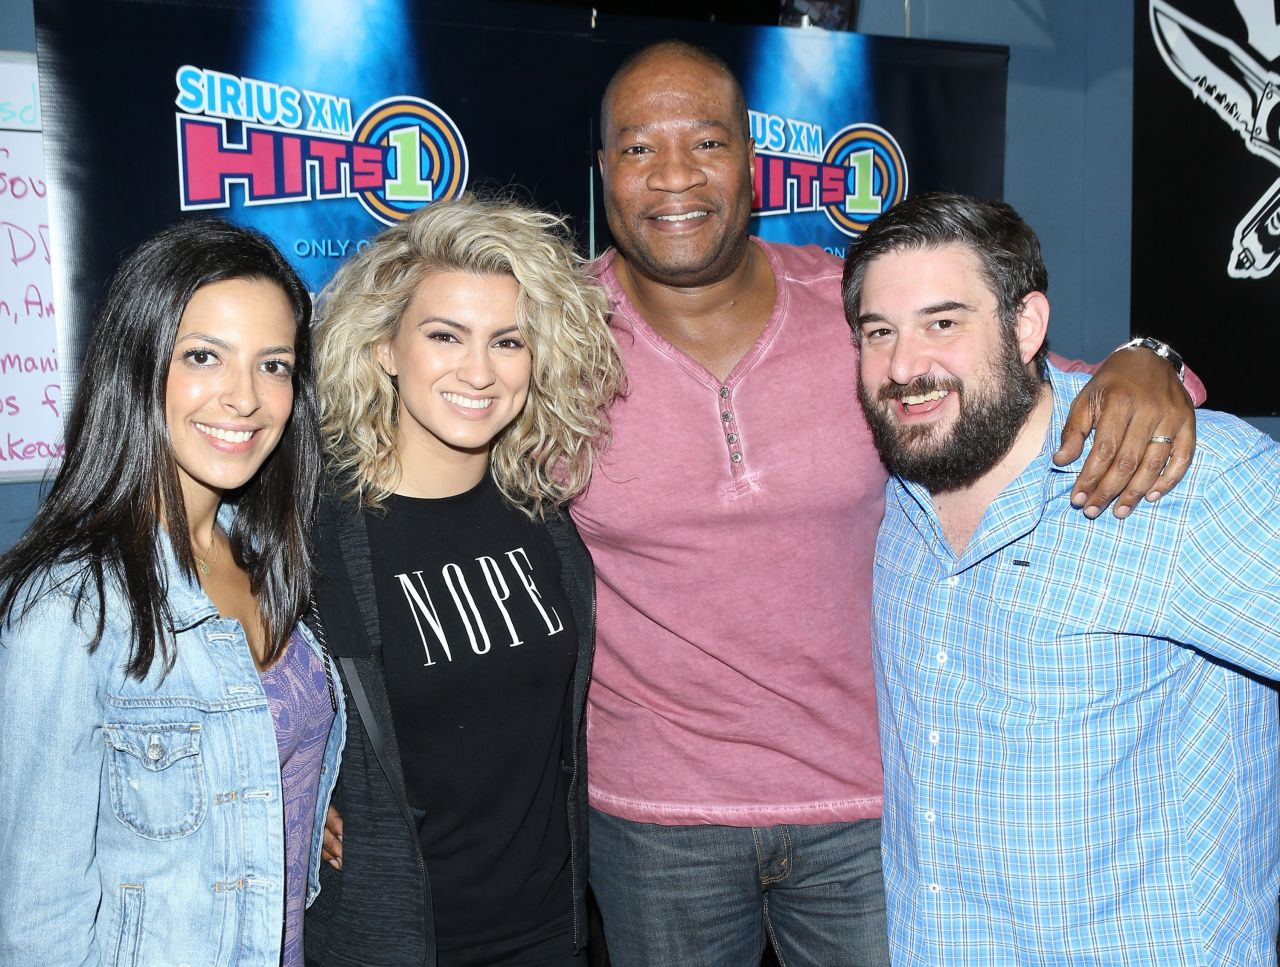 Tori Kelly Siriusxm Hits 1 S The Morning Mash Up